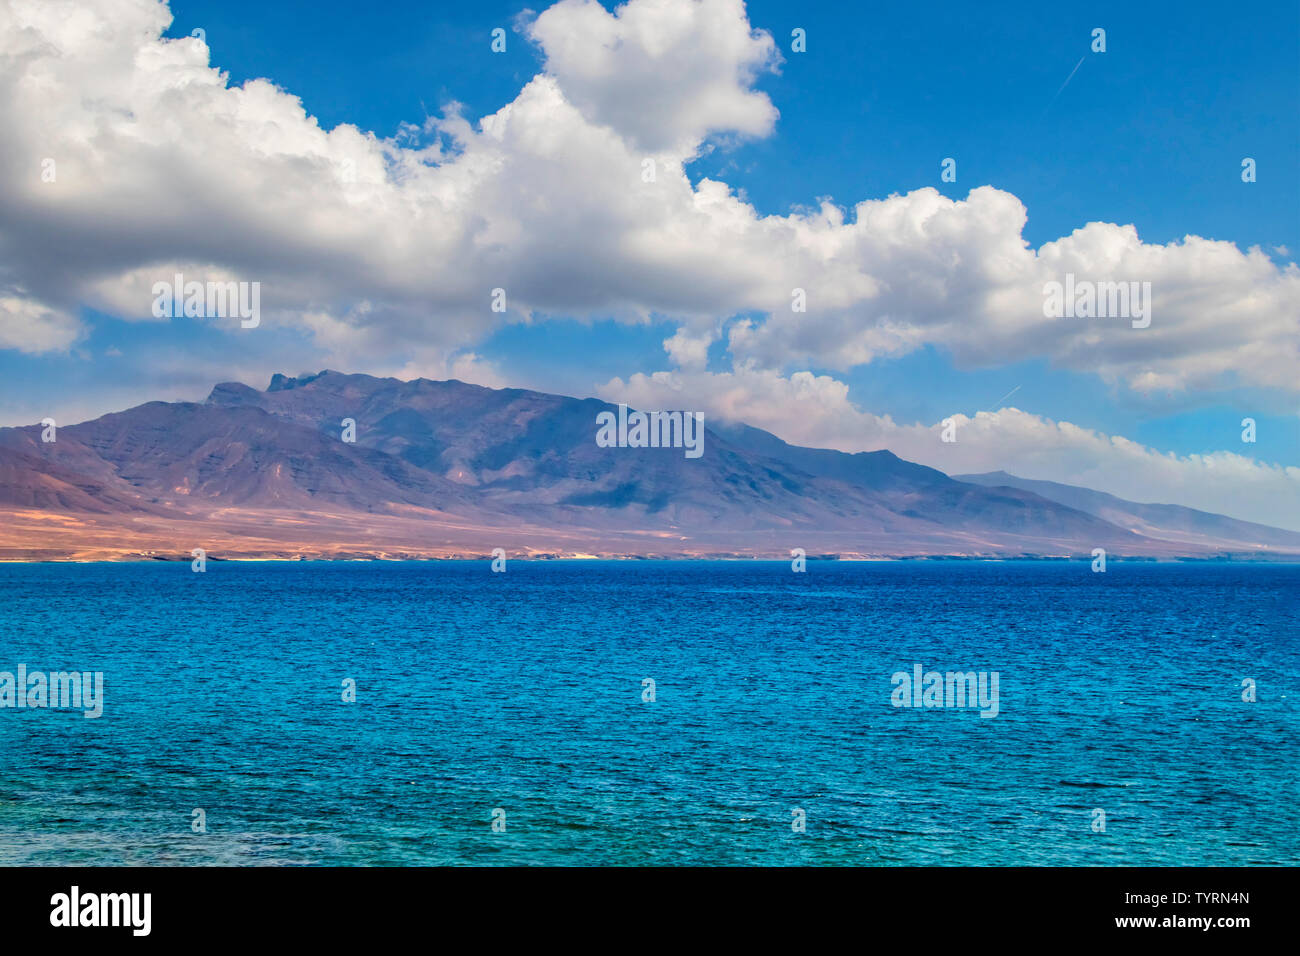 View of the hill on the island Fuerteventura near Morro Jable, Canary islands, Spain. There is clear blue water and beautiful sky. Stock Photo